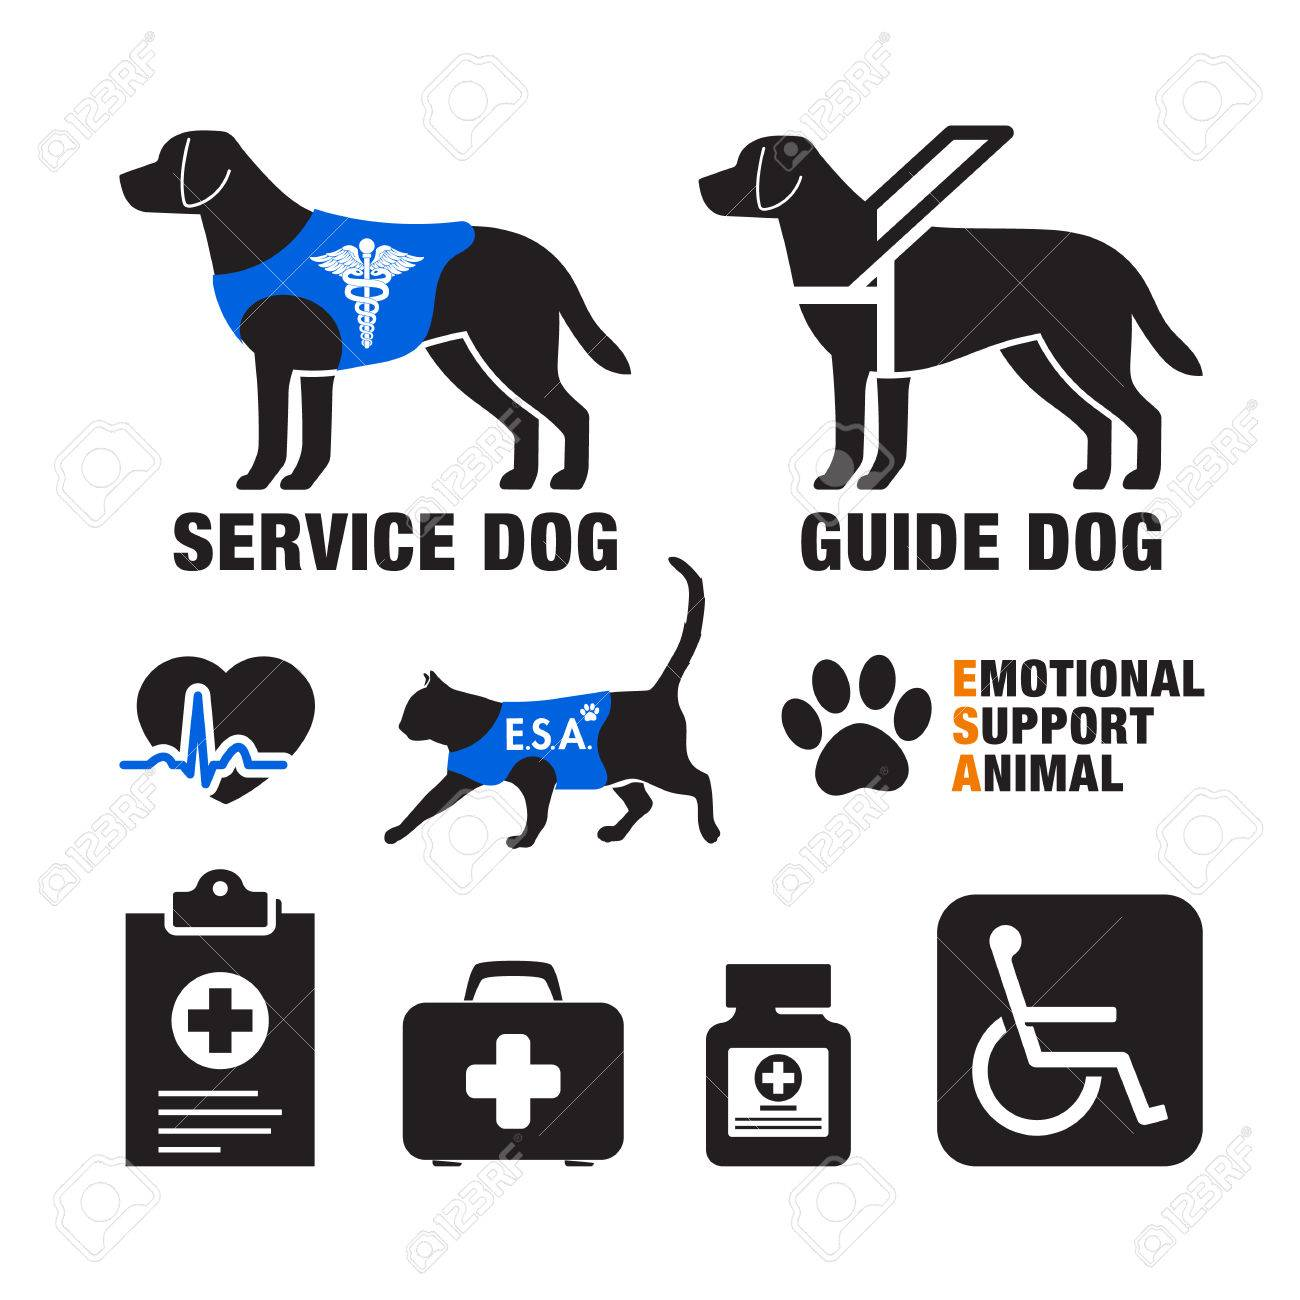 Service dogs and emotional support animals emblems. - 74772556